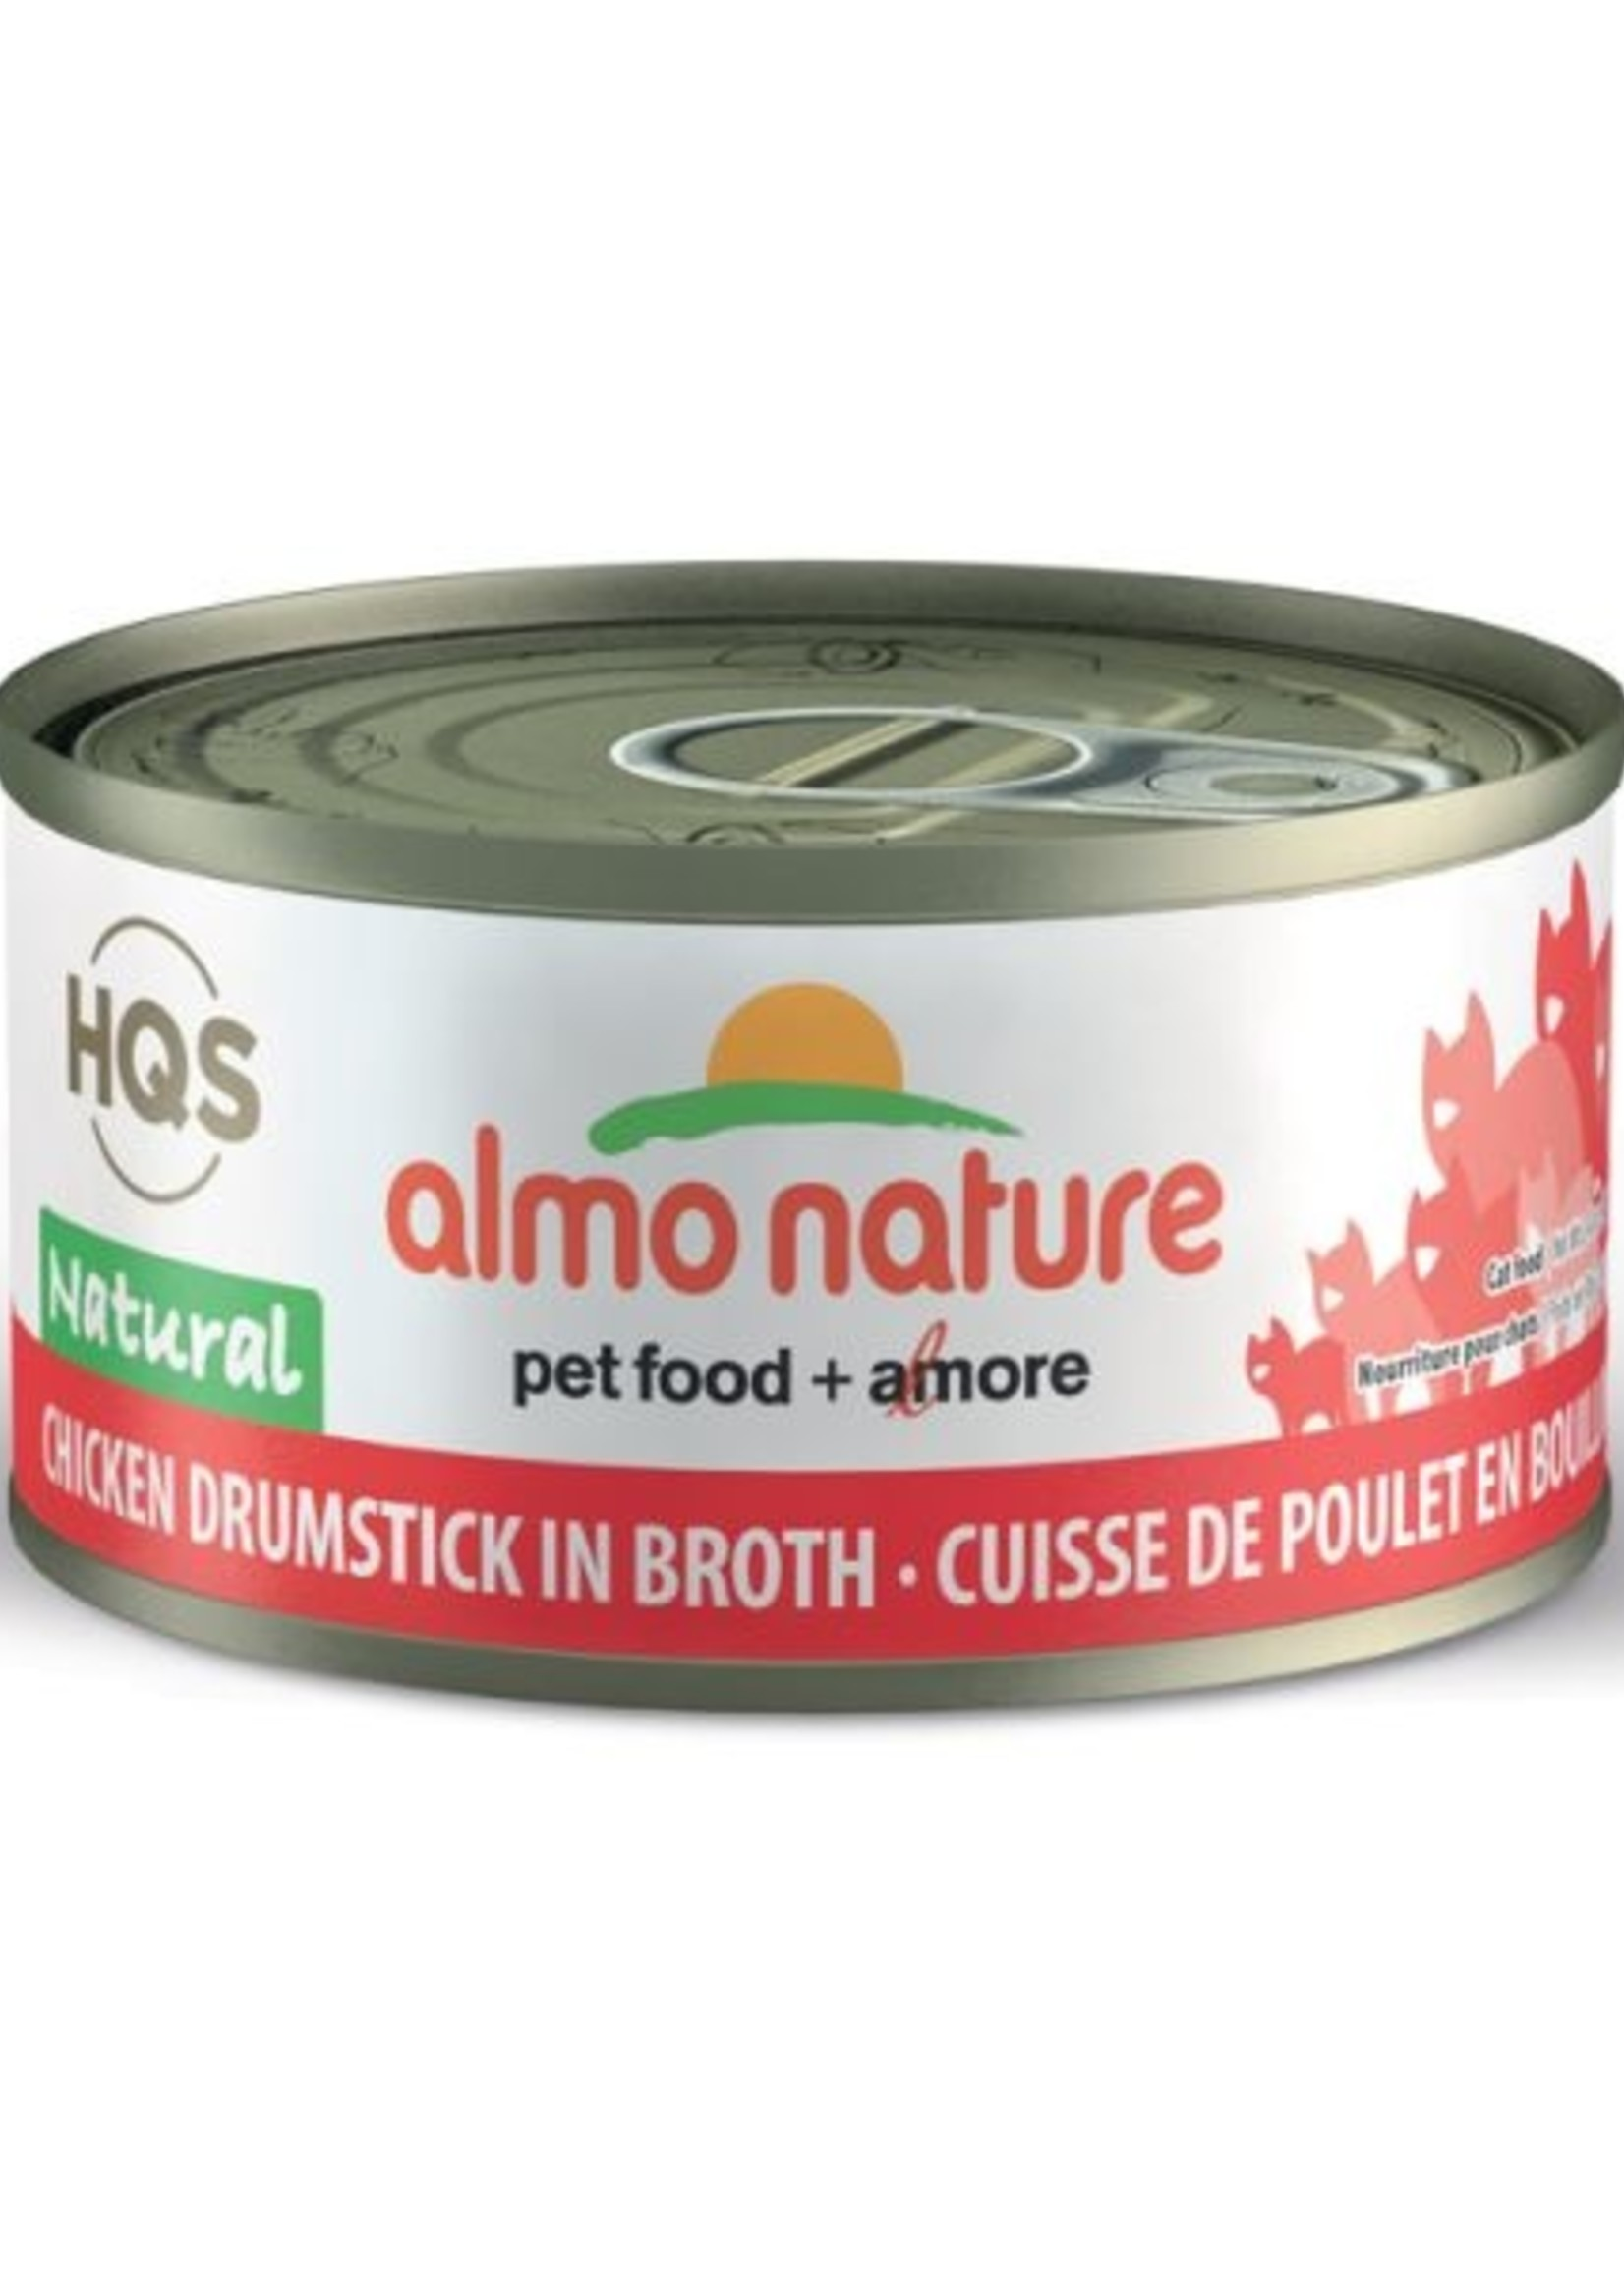 Almo Nature© Almo Nature HQS Natural Chicken Drumstick in Broth 70g